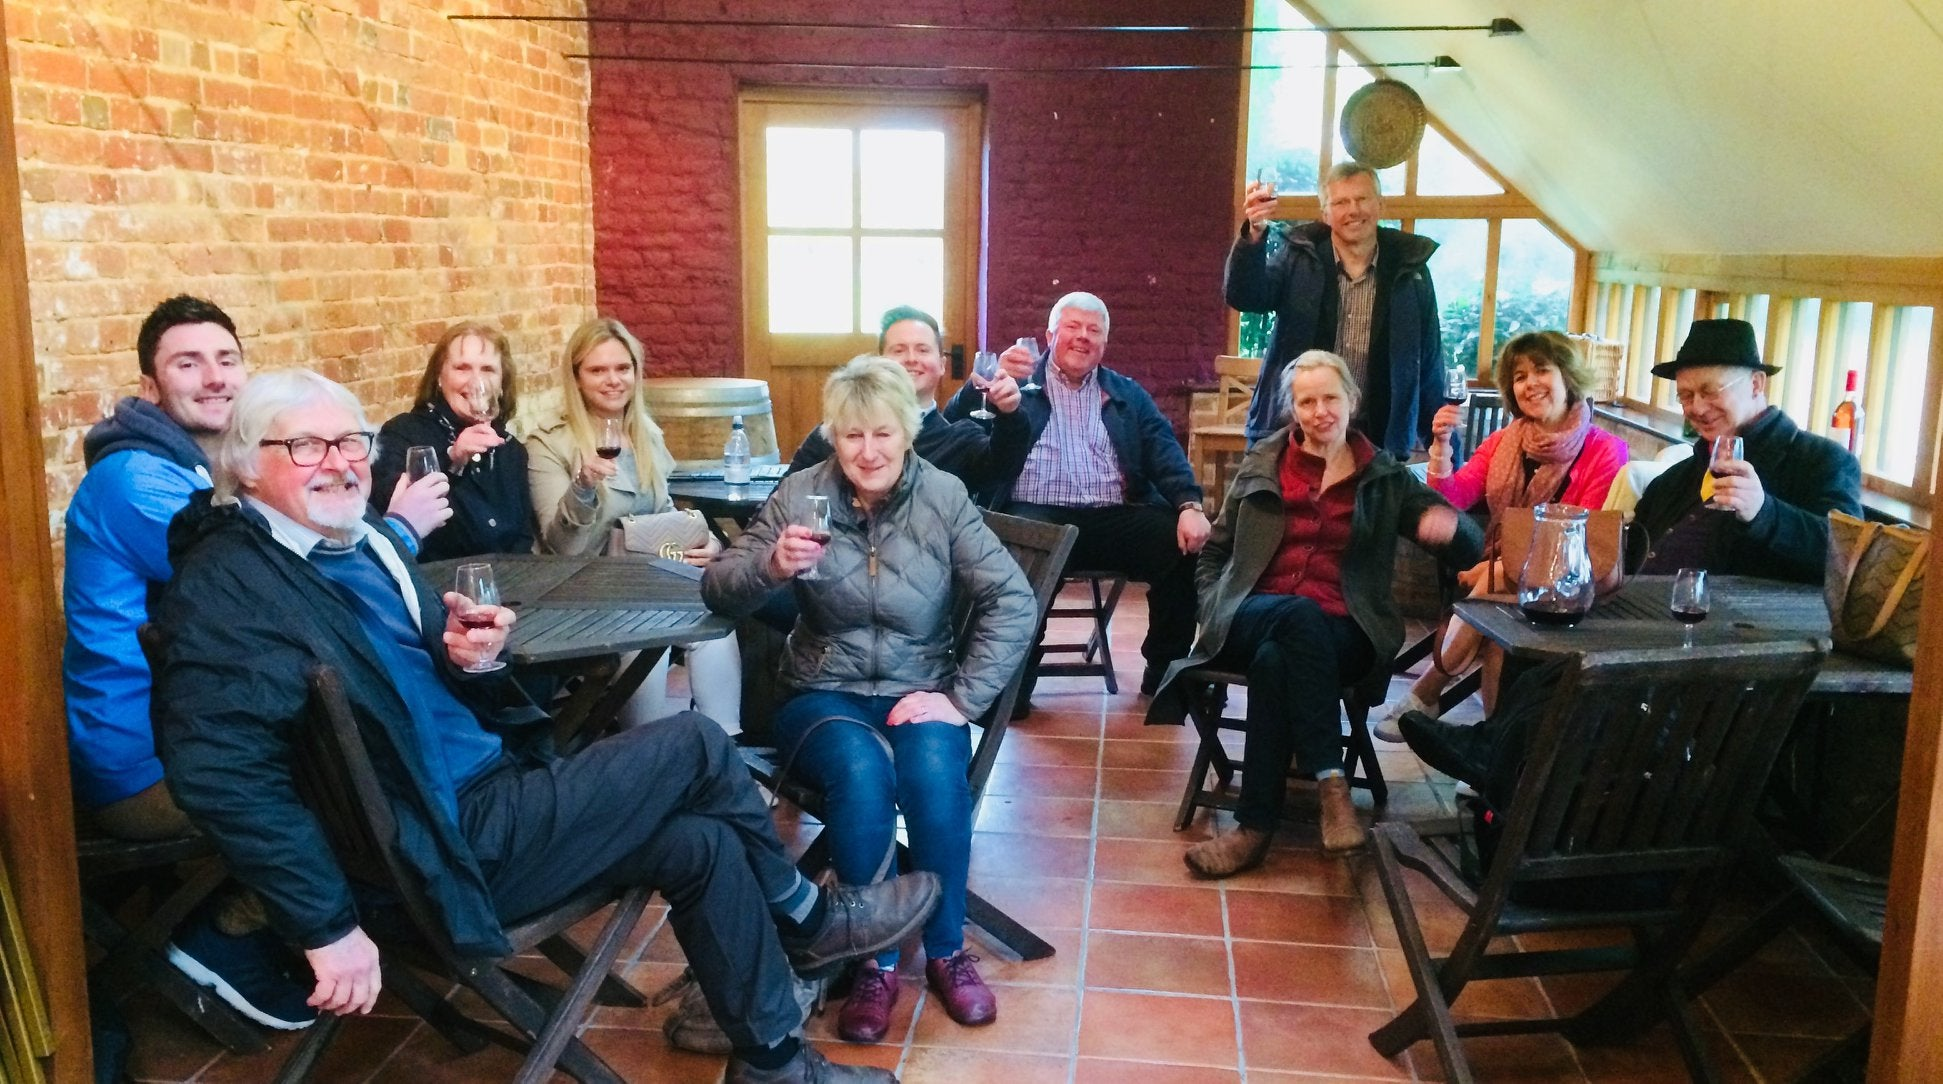 Sunday 28th April 2019 at 2pm - WINE LOVER Tour